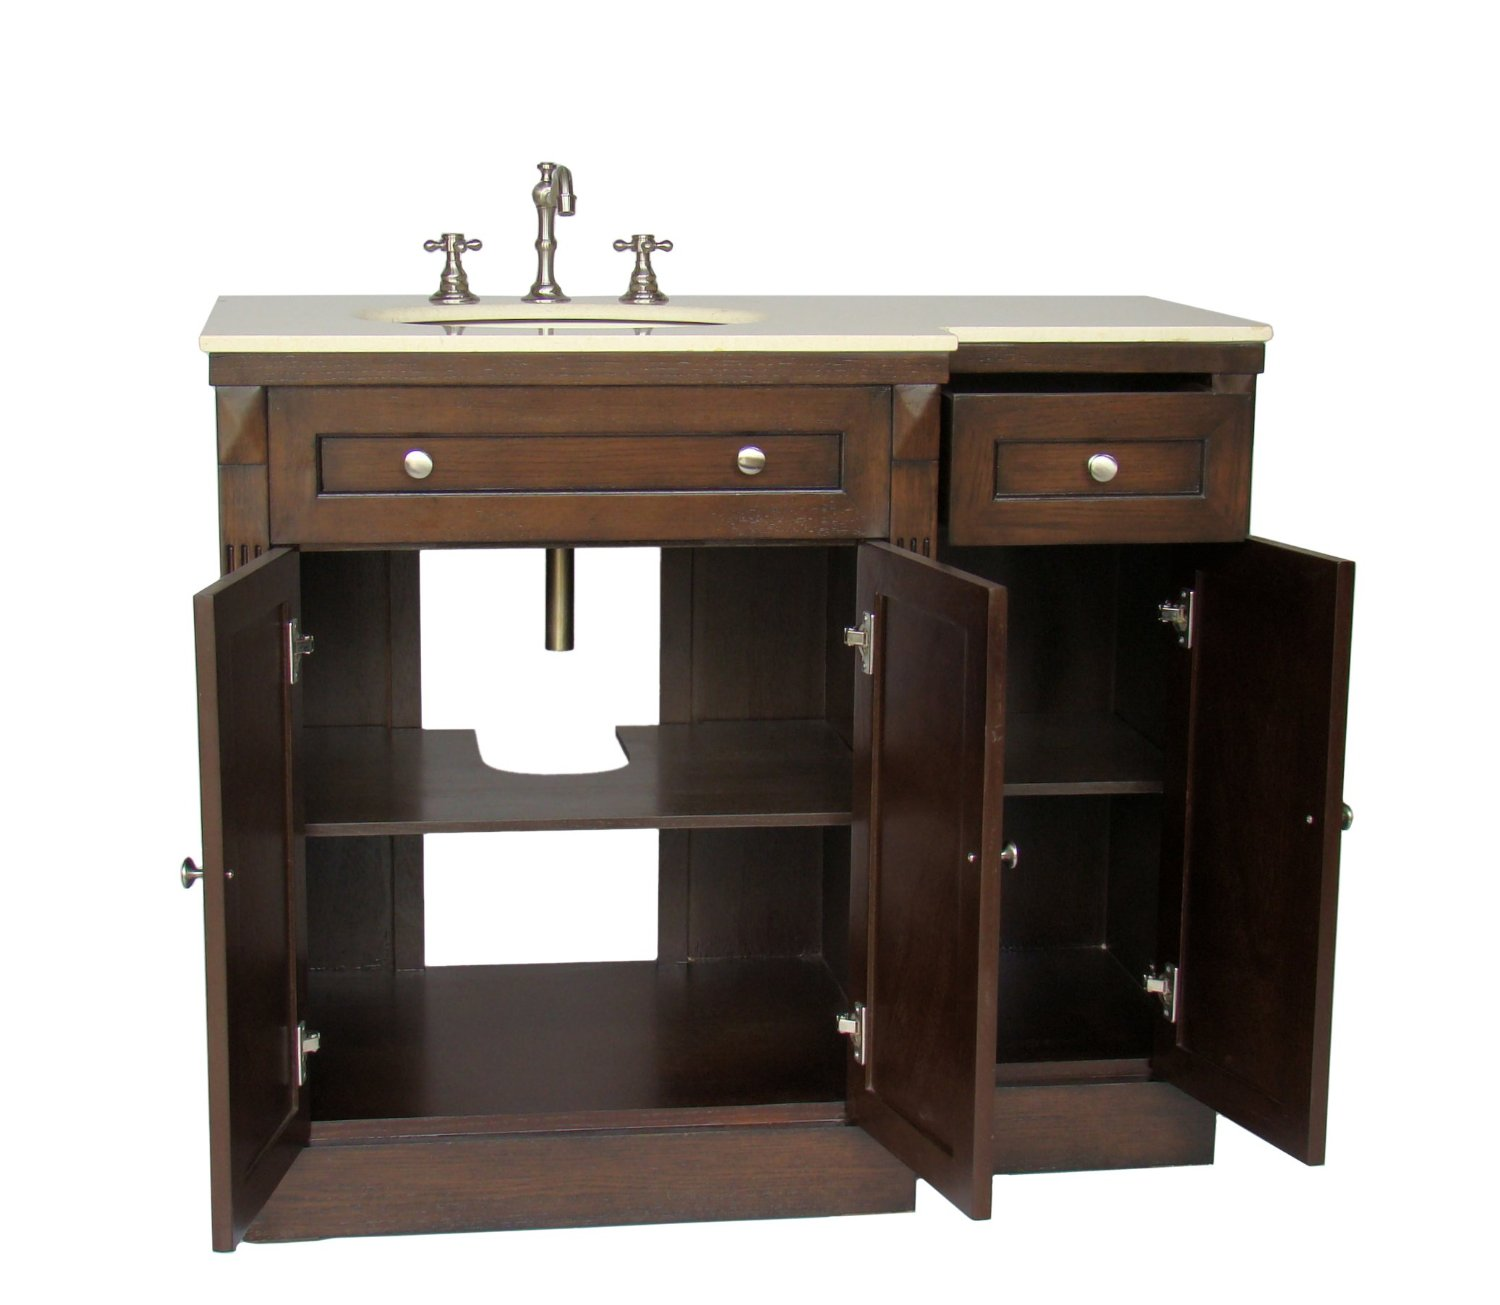 traditional bathroom vanity designs. Adelina 42 Inch Traditional Bath Vanity Cream Marble Top Bathroom Designs